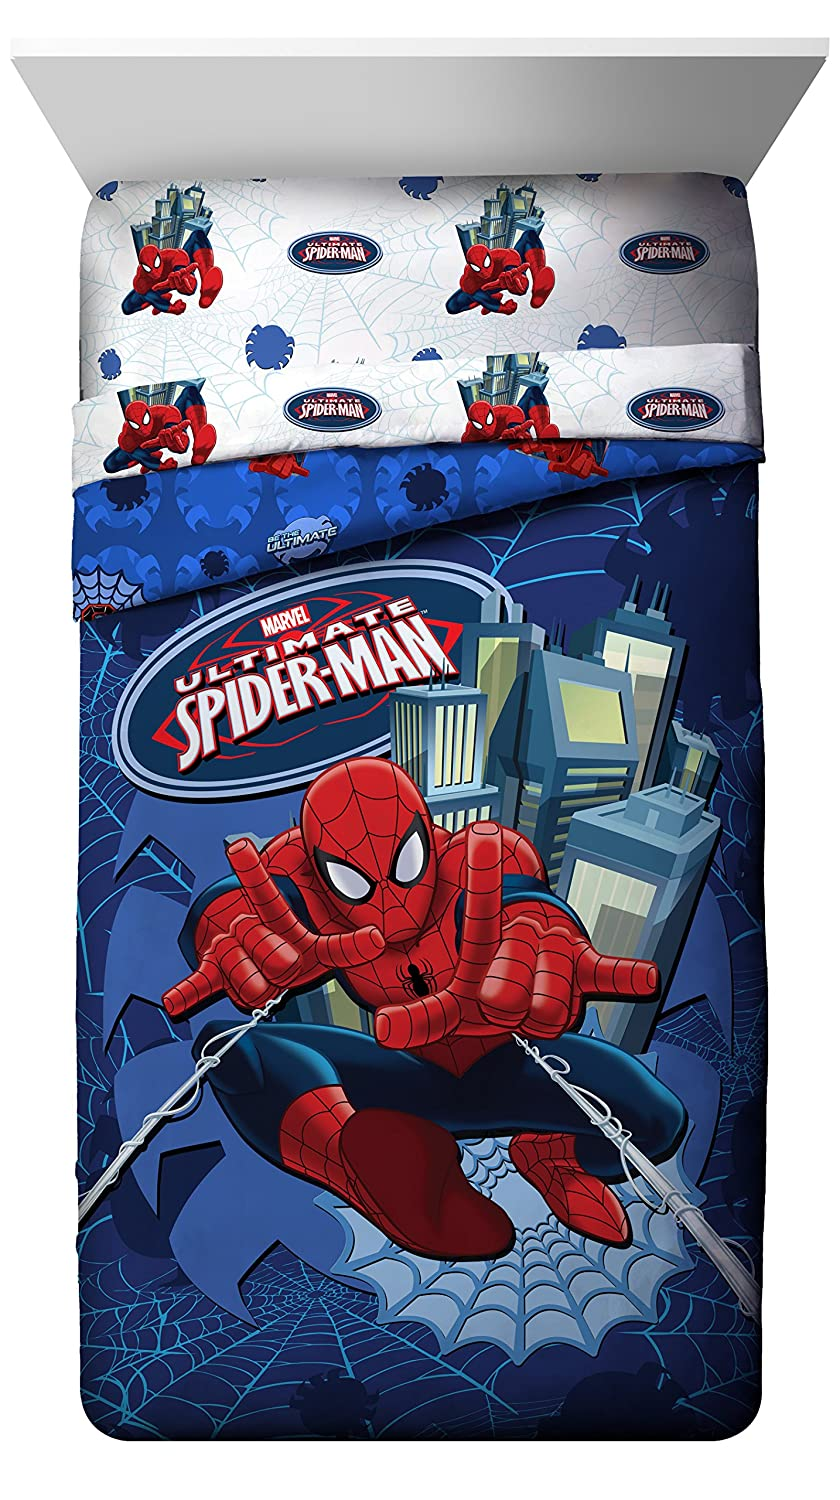 Marvel Spiderman Astonish Full Comforter - Super Soft Kids Reversible Bedding features Spiderman - Fade Resistant Polyester Microfiber Fill (Official Marvel Product) J Franco JF20734